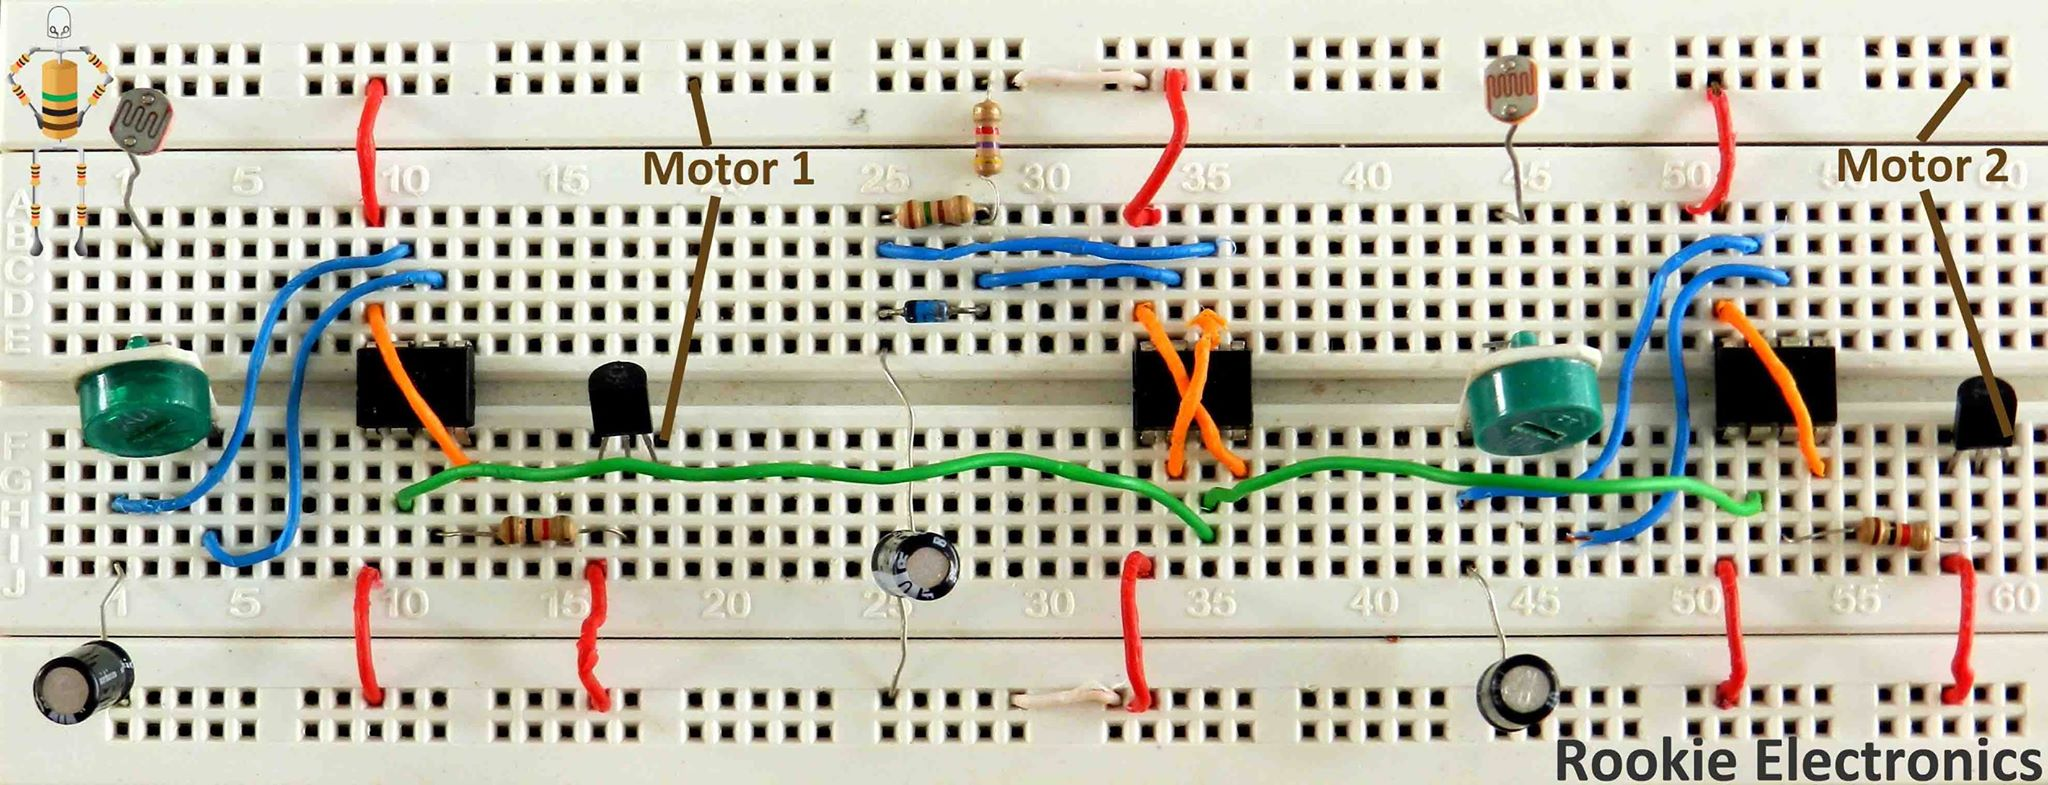 29 Breadboard Electronics 555 Timers 48projectsblog